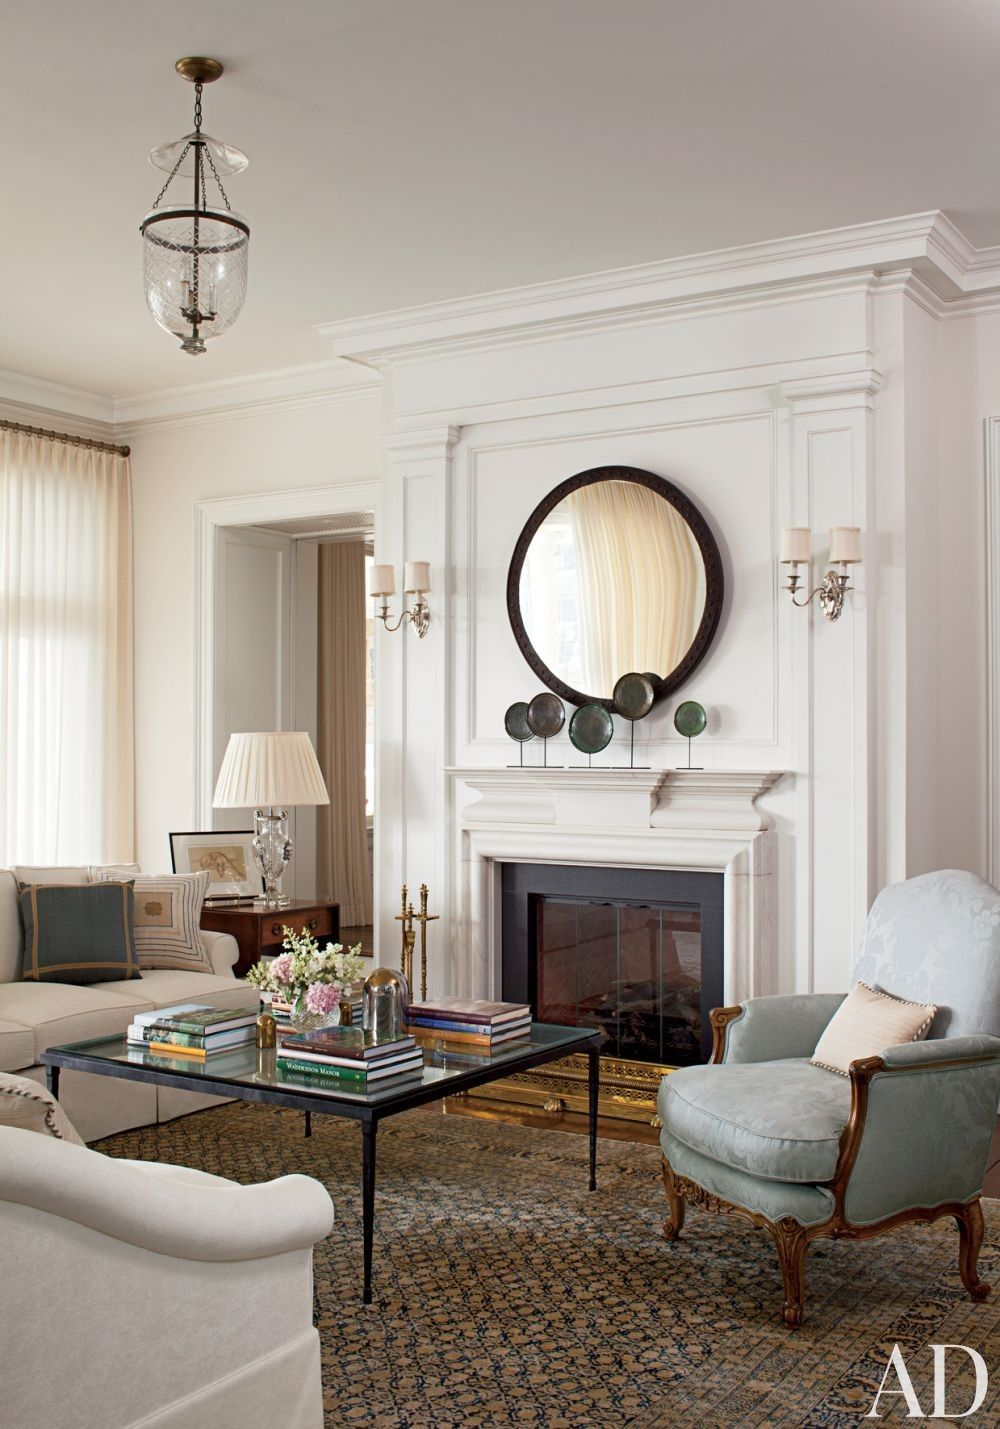 Silver plate sconces from Remains Lighting flank the